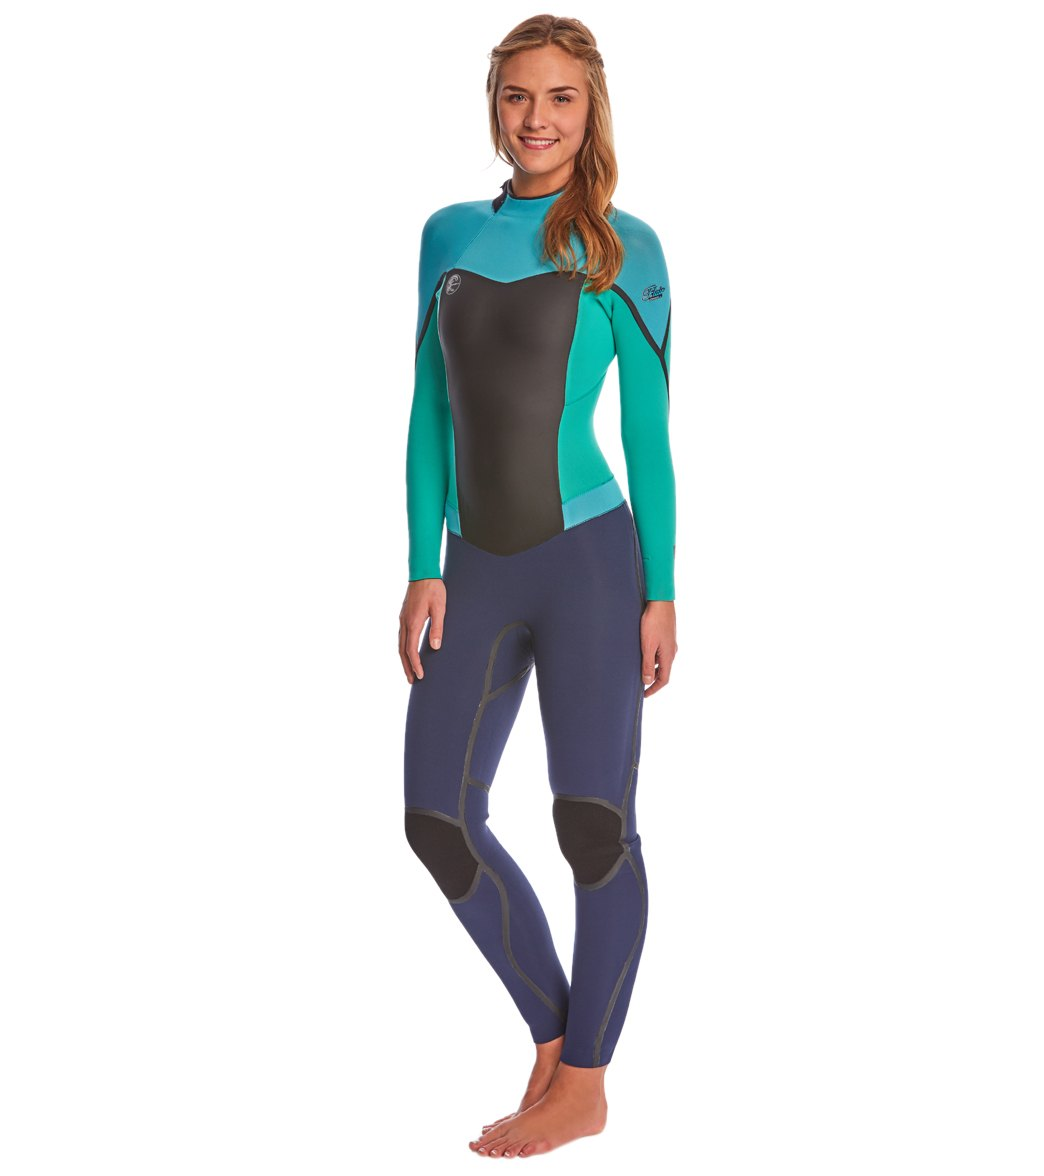 080940fd7a O Neill Women s 3 2MM Flair Z.E.N. Back Zip Fullsuit Wetsuit at ...